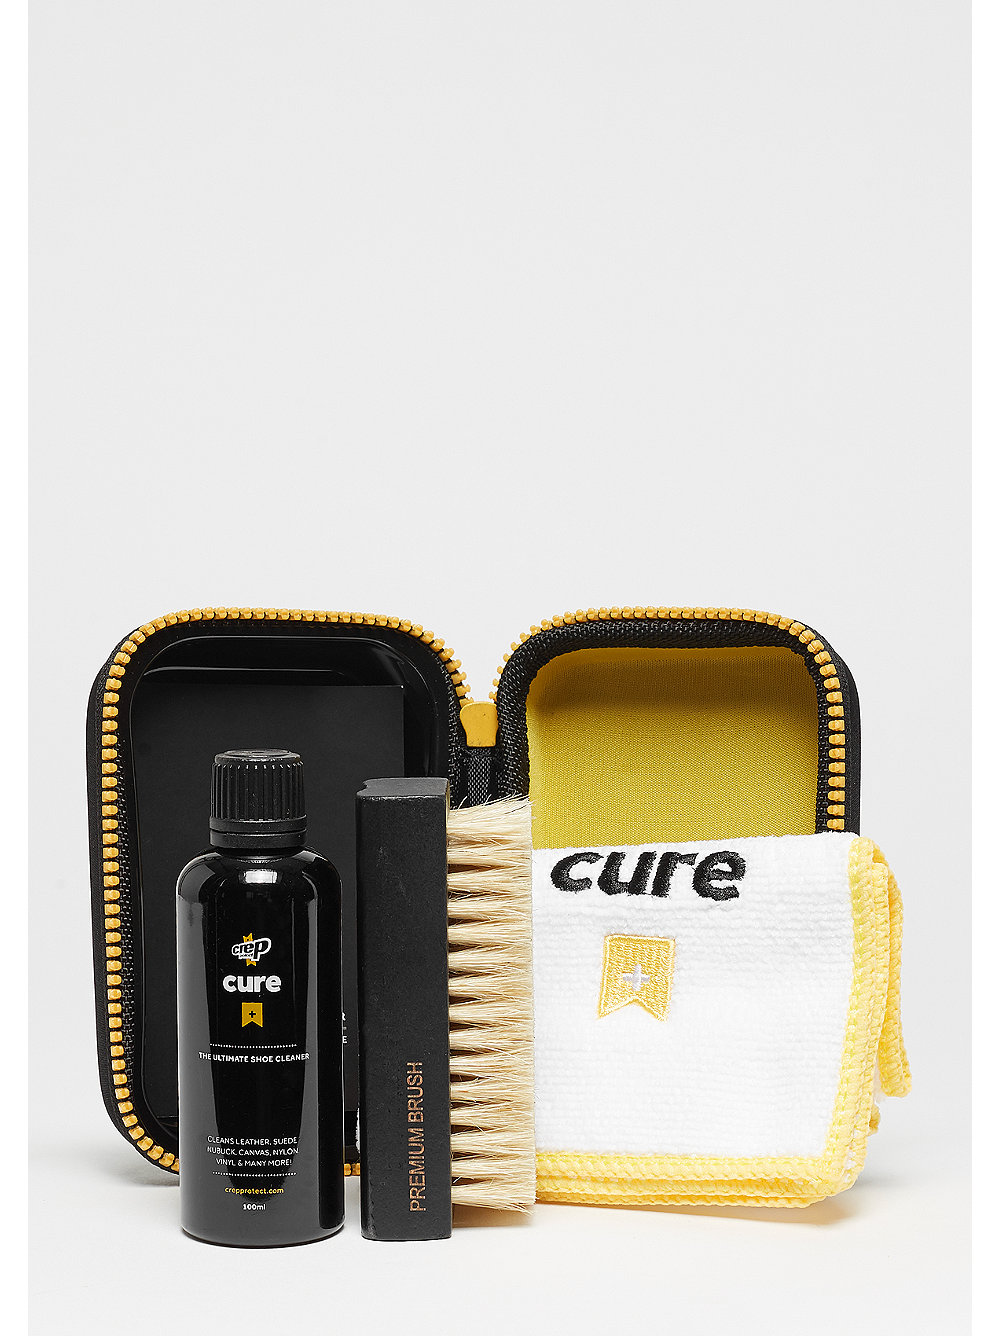 Crep Protect Cure Travel Set Im Snipes Onlineshop Ultimate Shoe Cleaning Kit